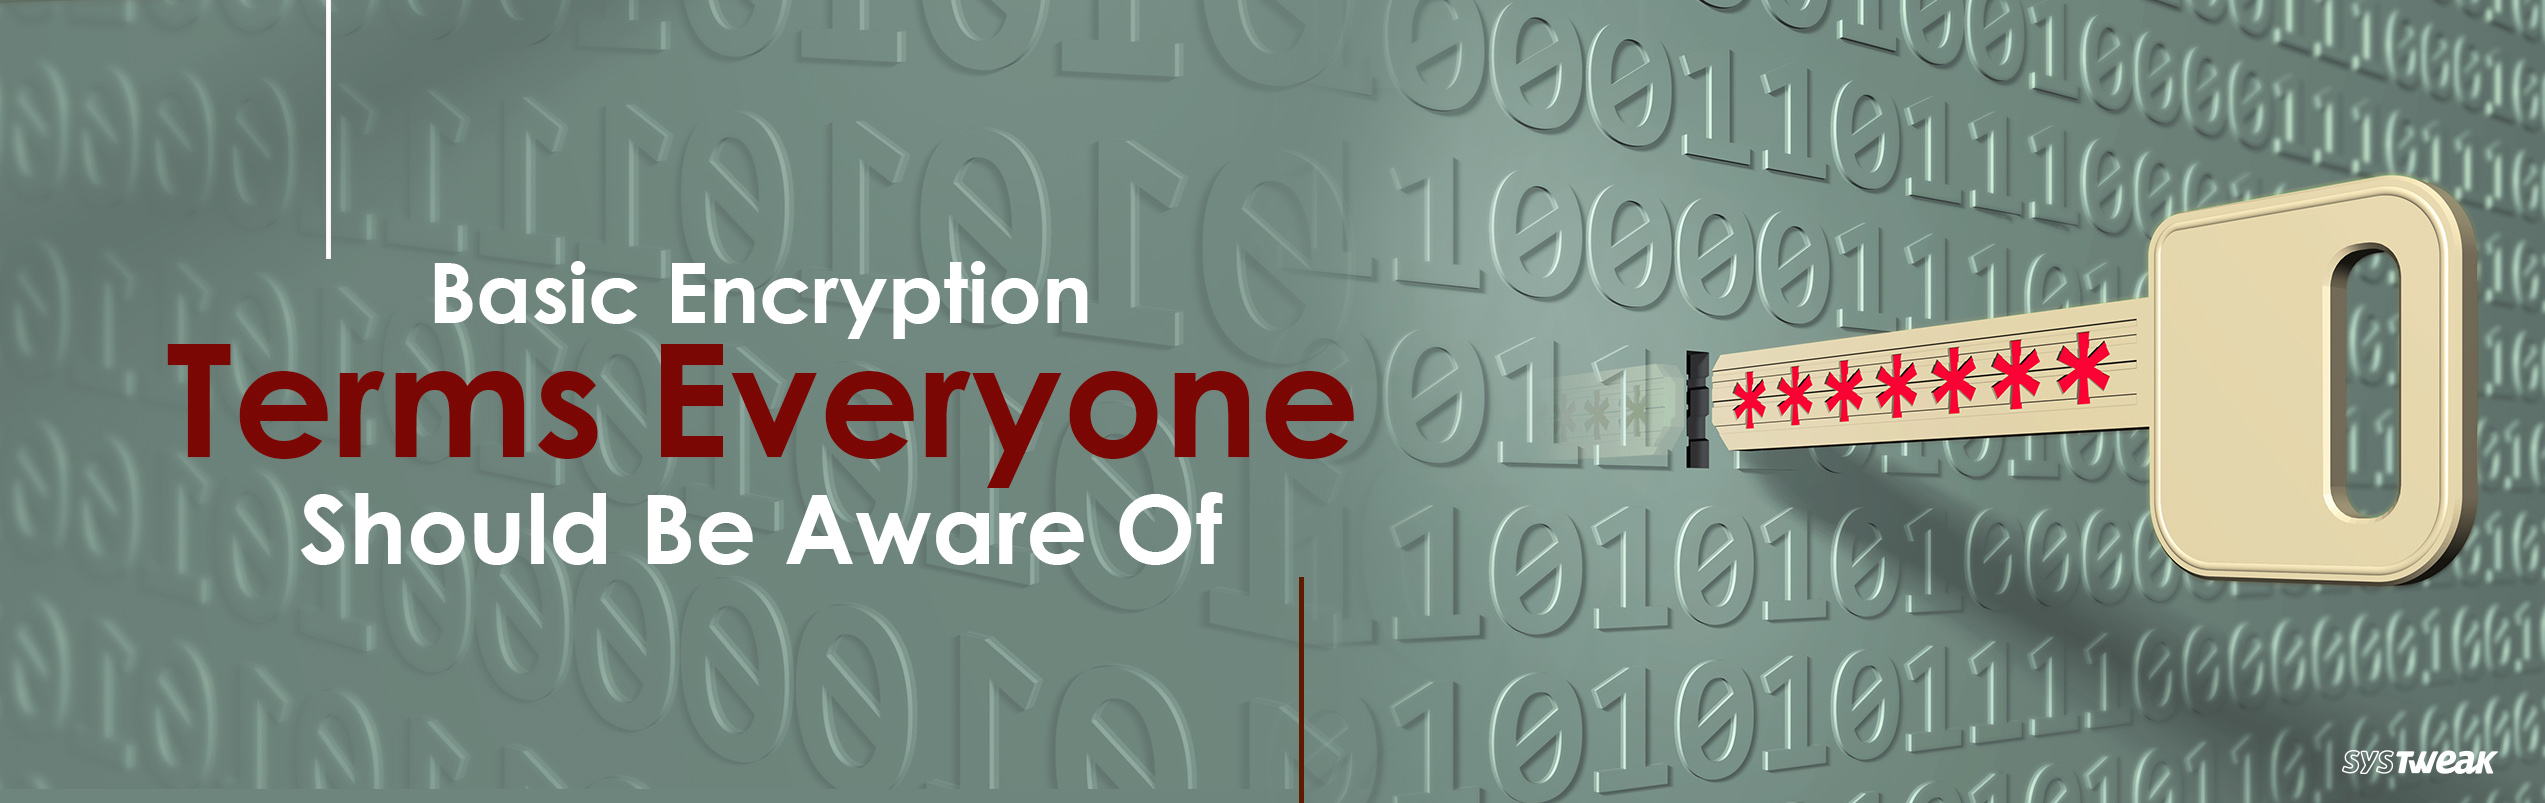 8 Common Encryption Terms & Their Meanings